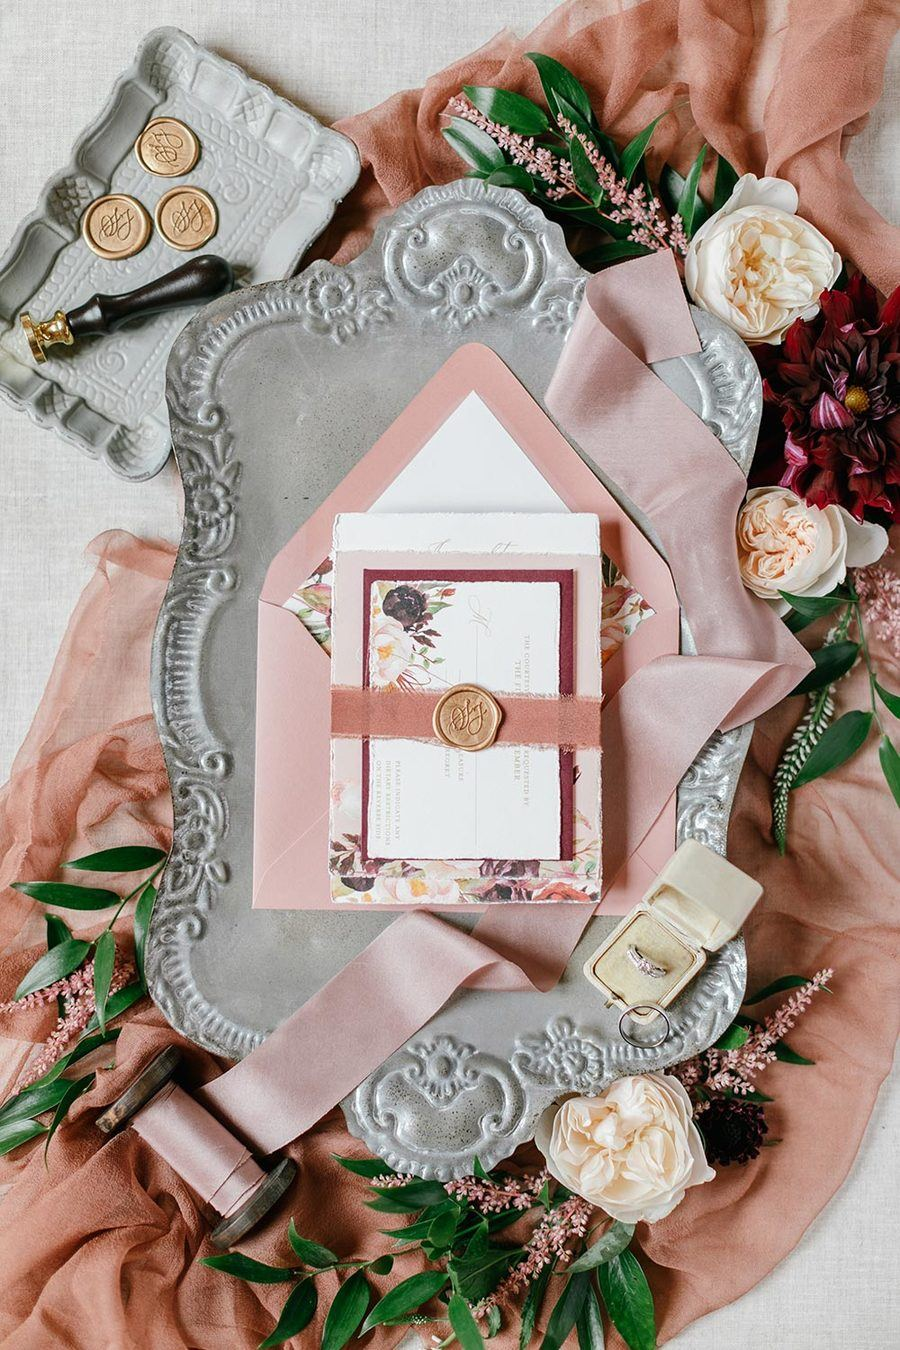 Vintage Wedding Invitation and Details Flat Lay